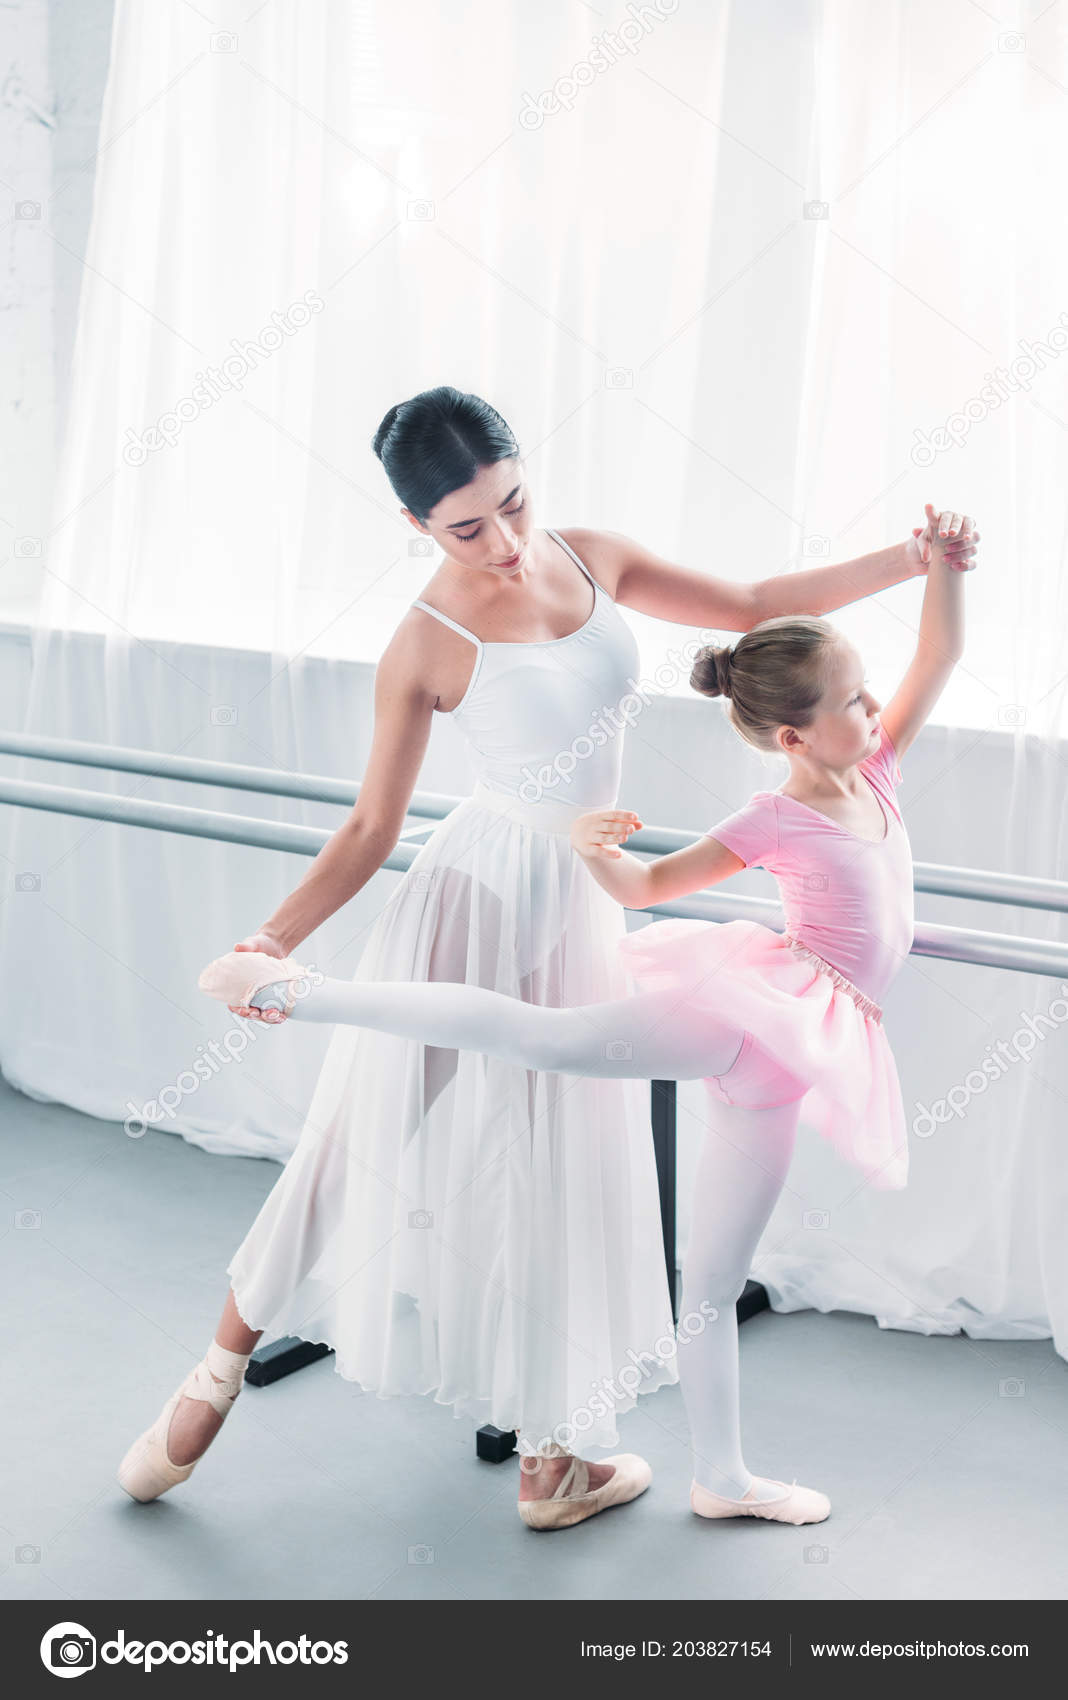 Dance your way to health with tap dancing and ballet Deaf fashion in ballet